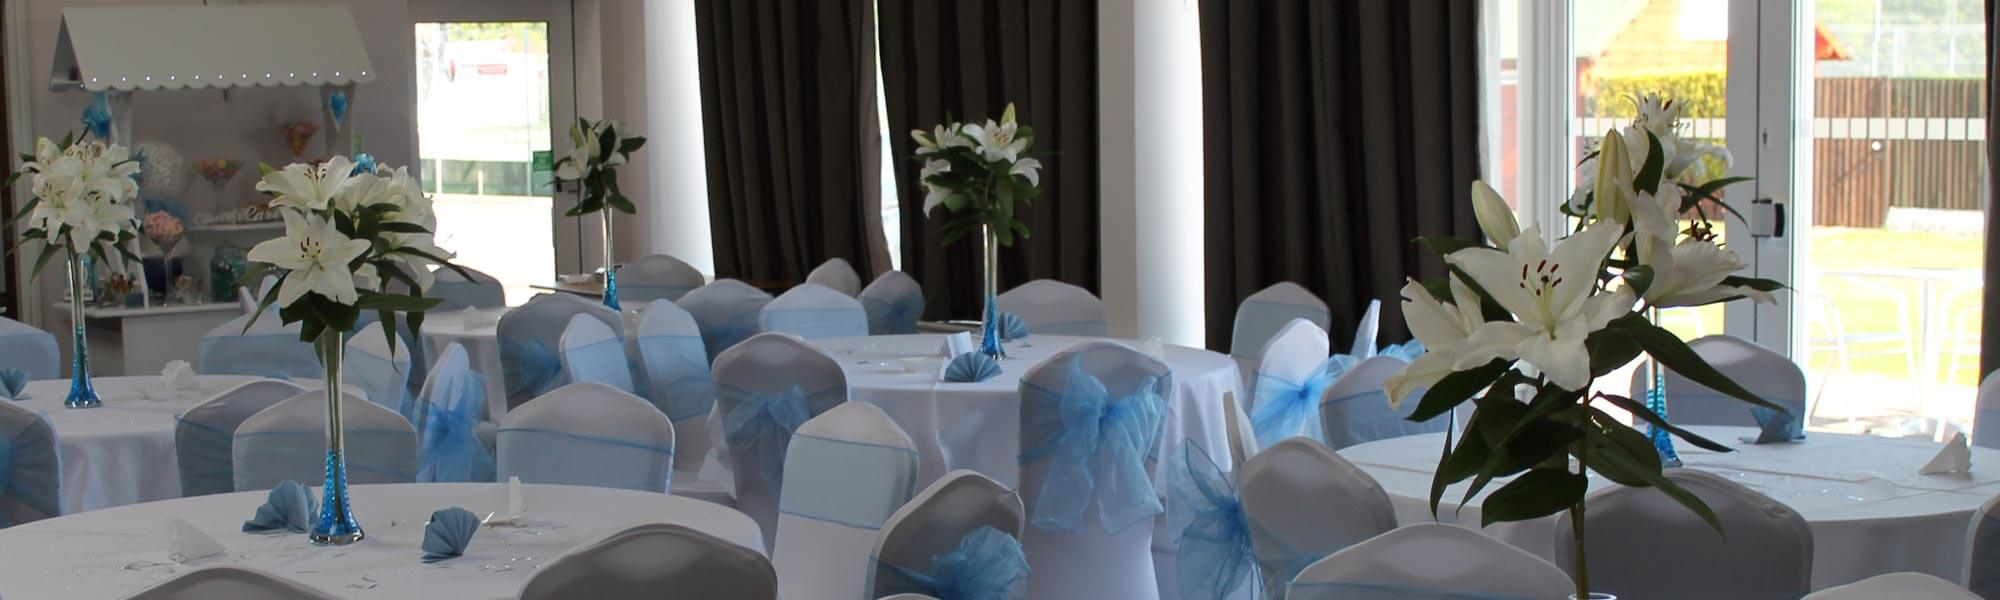 Blue themed venue decoration with chair covers, sweet cart and centre pieces